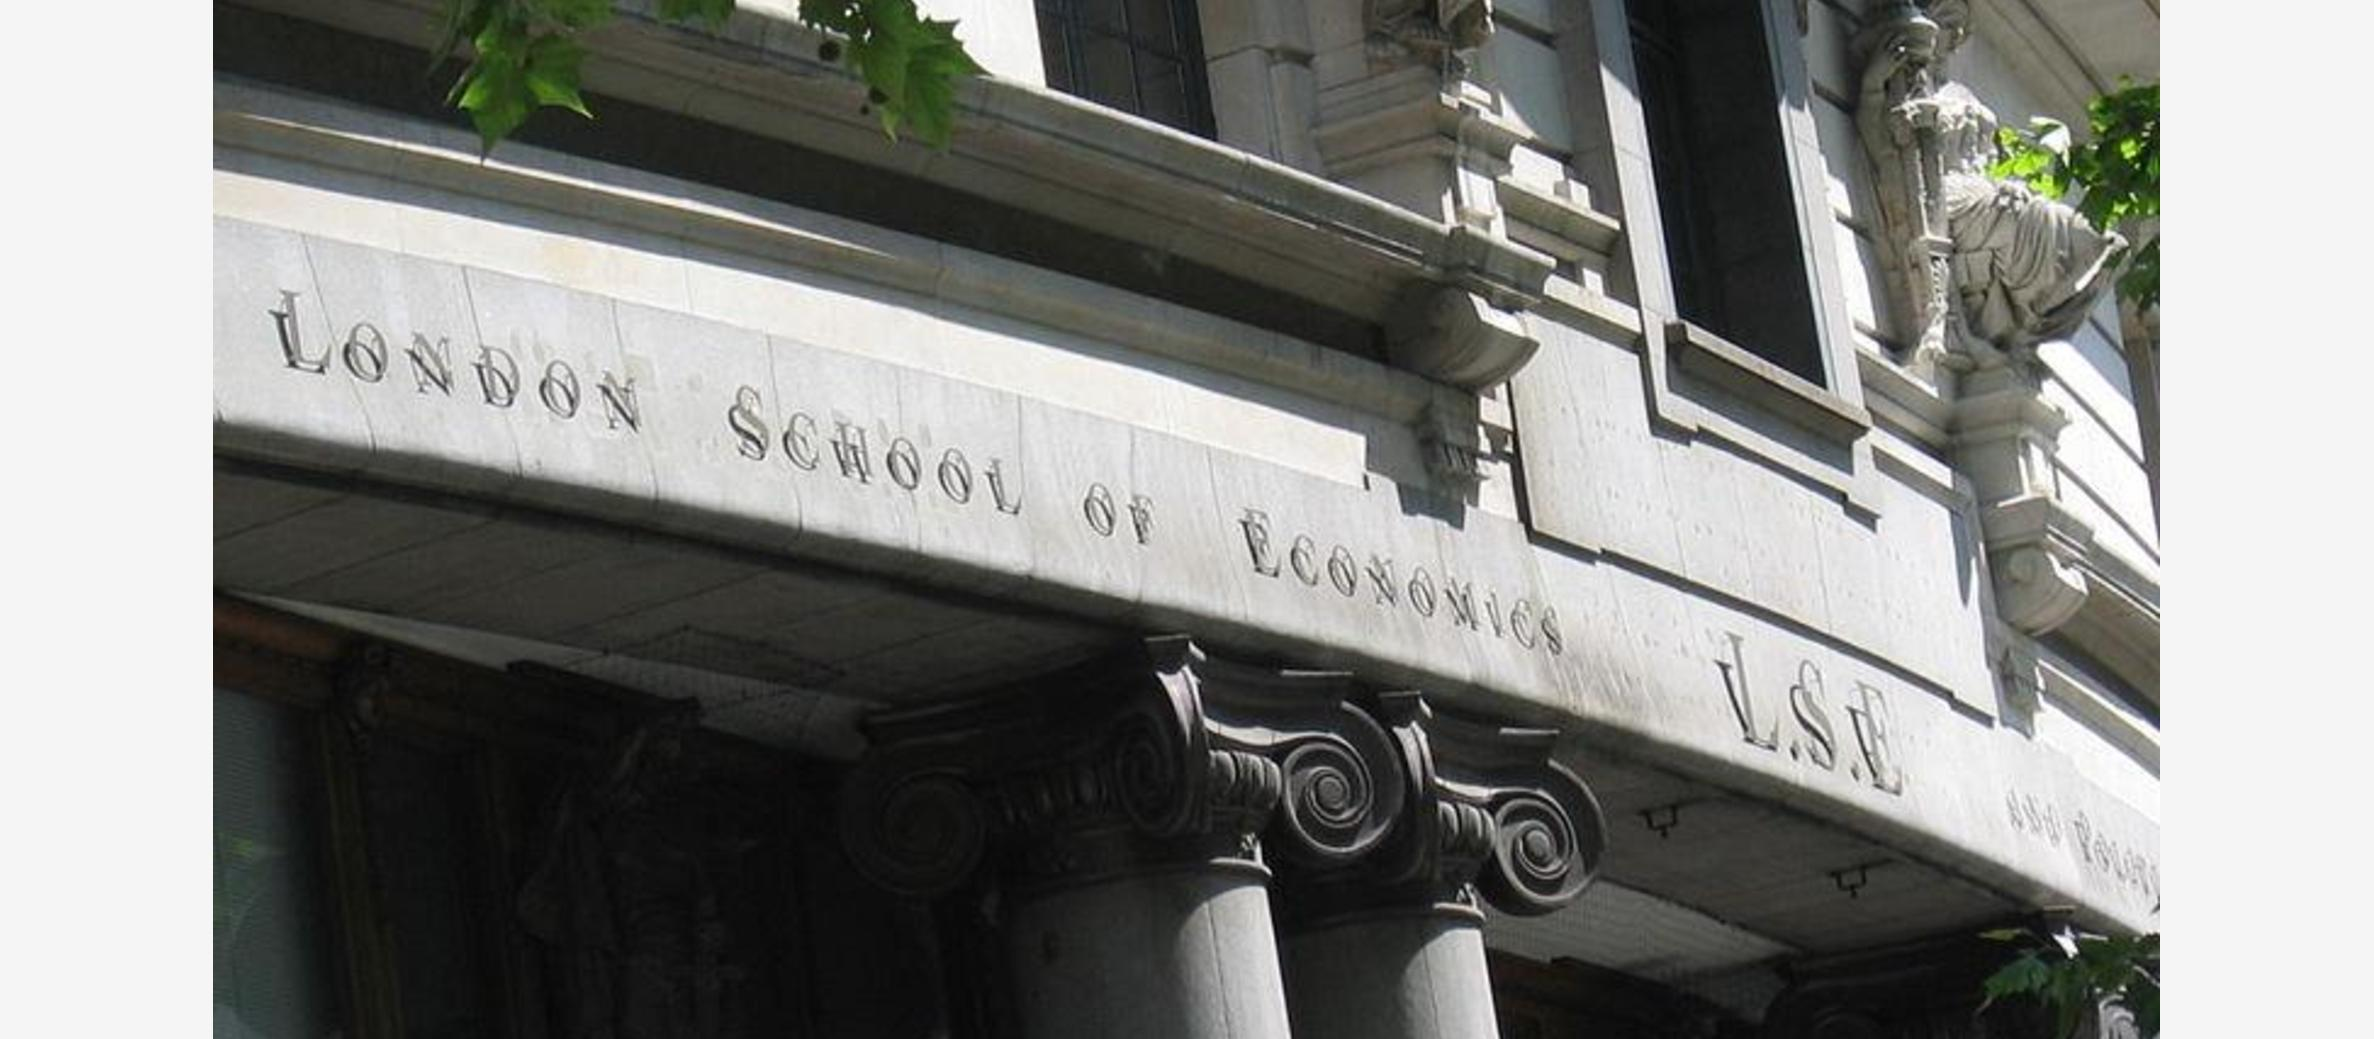 LSE Israel Society says student union failing to take action over anti-Israel campus events